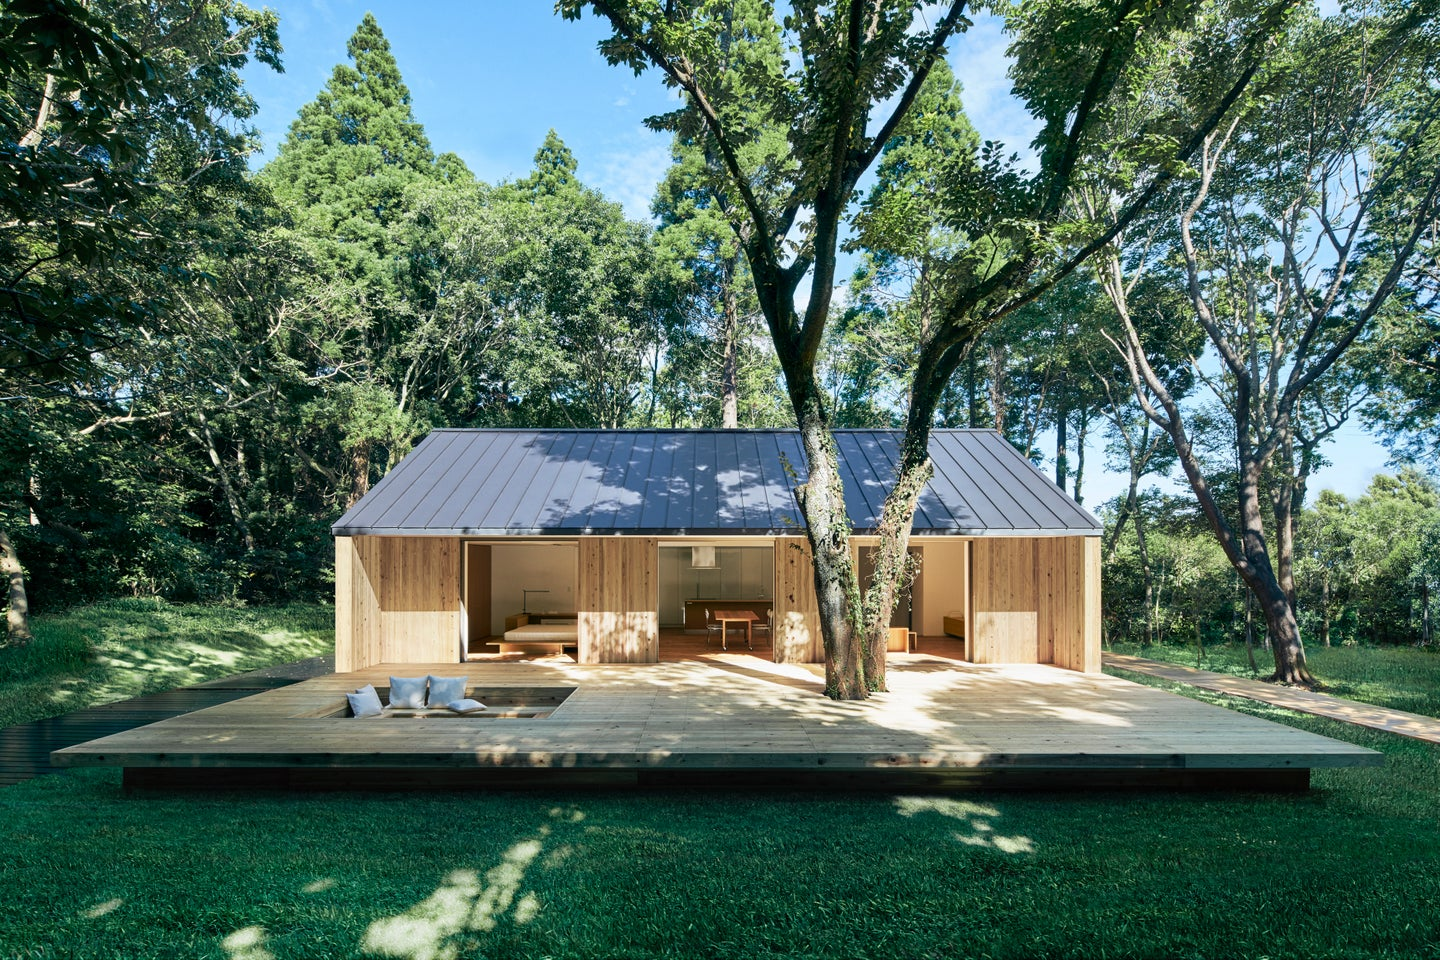 wood house in a forest